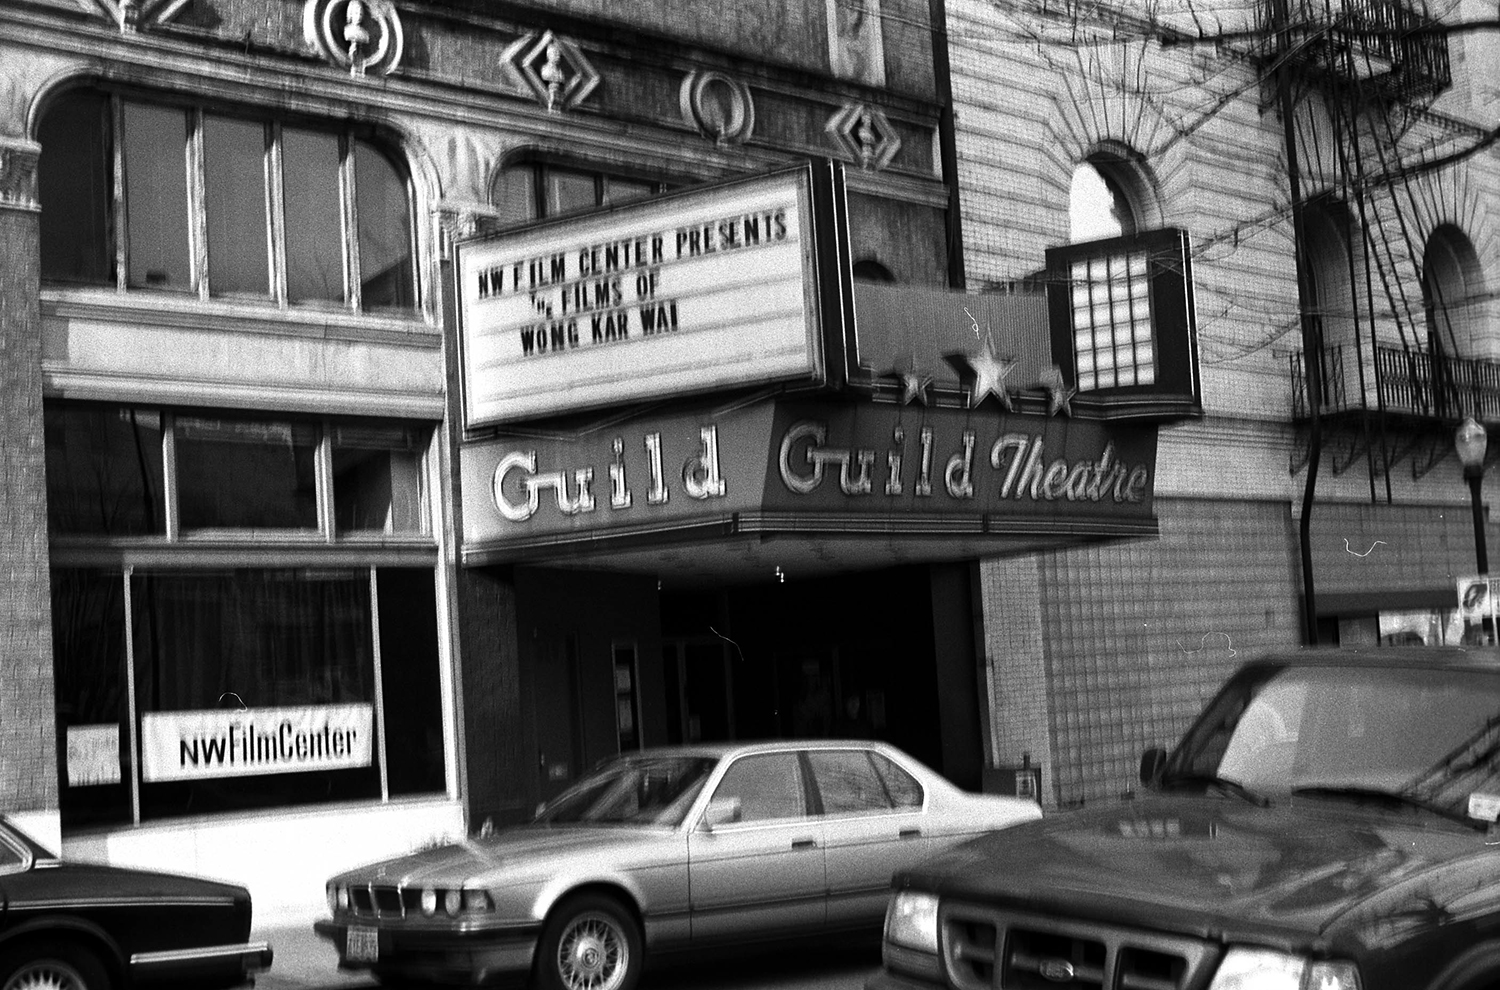 The Guild Theatre, quite a few years ago.